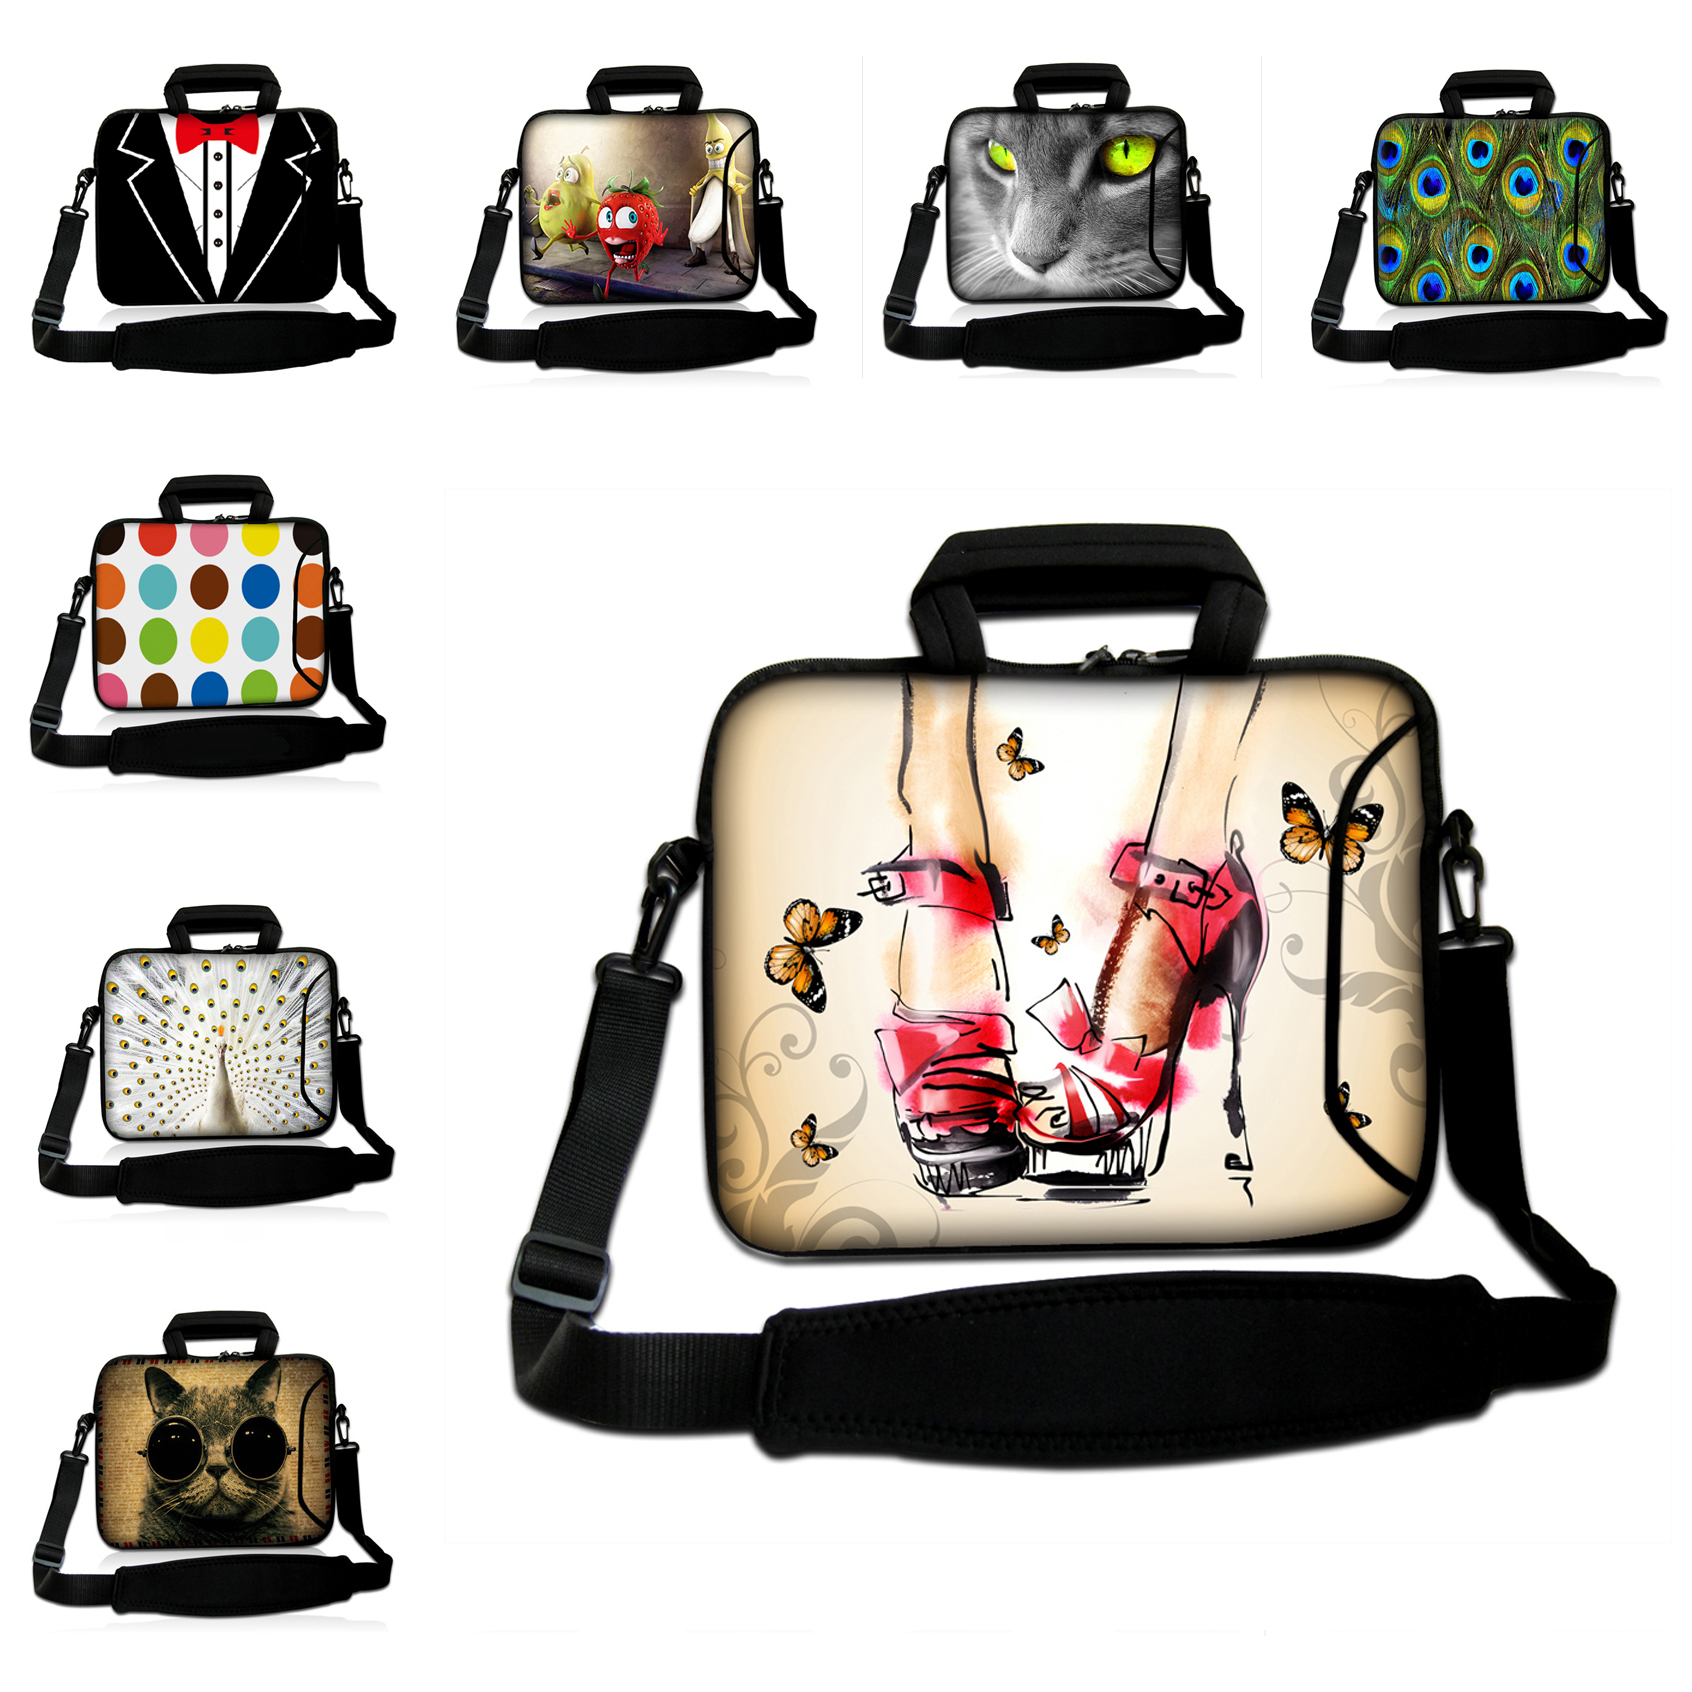 Notebook samsung 10 inch - 10 Inch Shoulder Bags For Ipad Air Samsung Galaxy Lenovo Dell 9 7 10 1